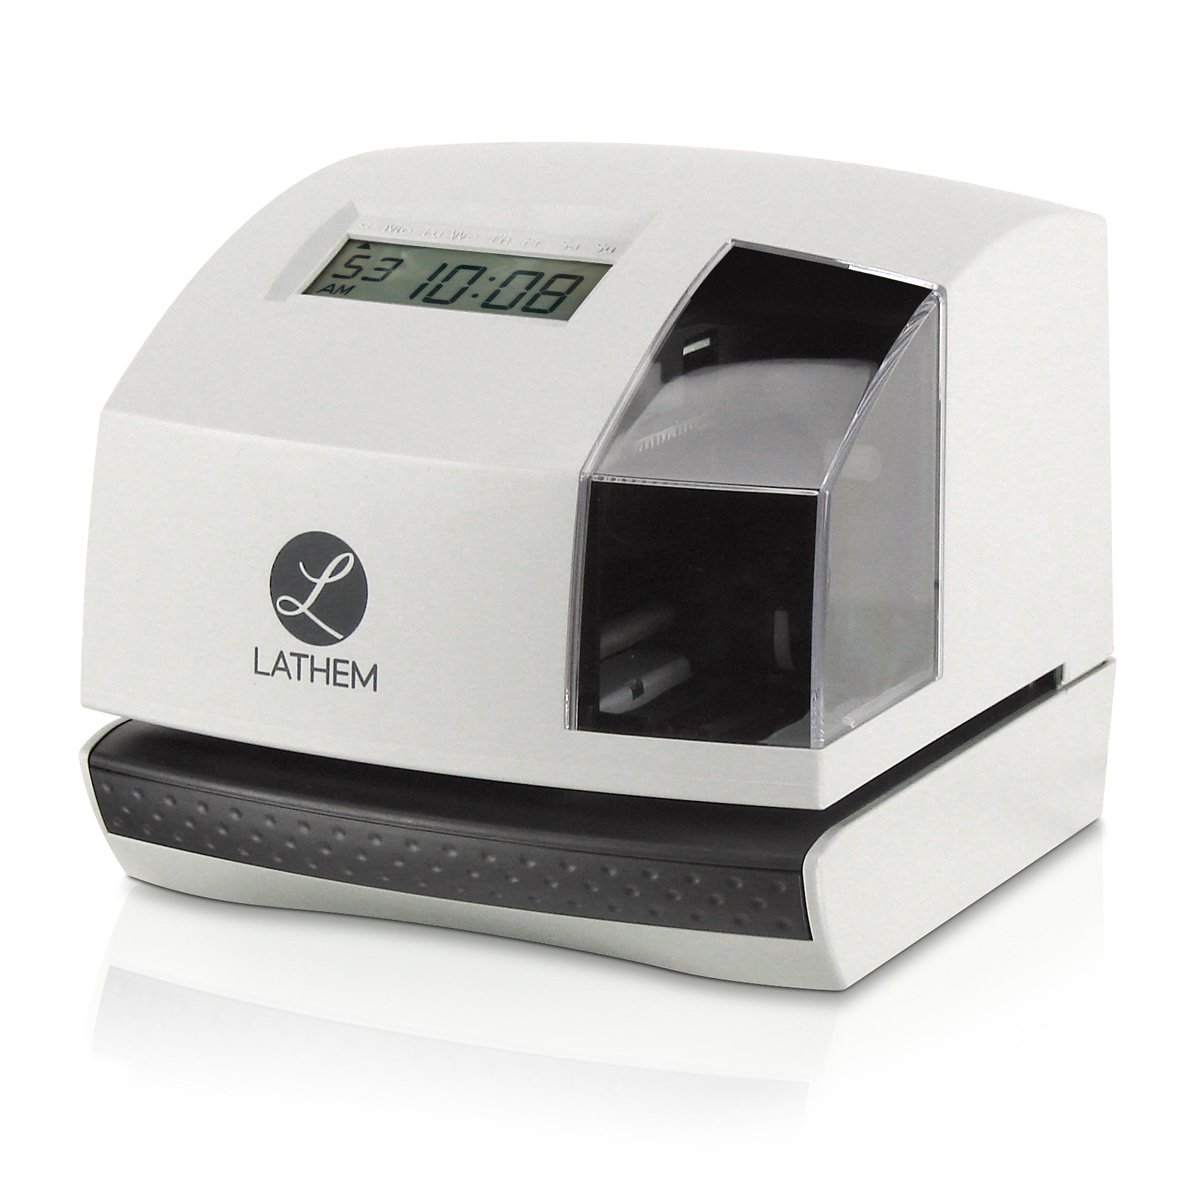 Lathem 100E Multi-Function Electronic Time Clock and Document Stamp, Can Be Mounted on Wall or Desk, Includes Key